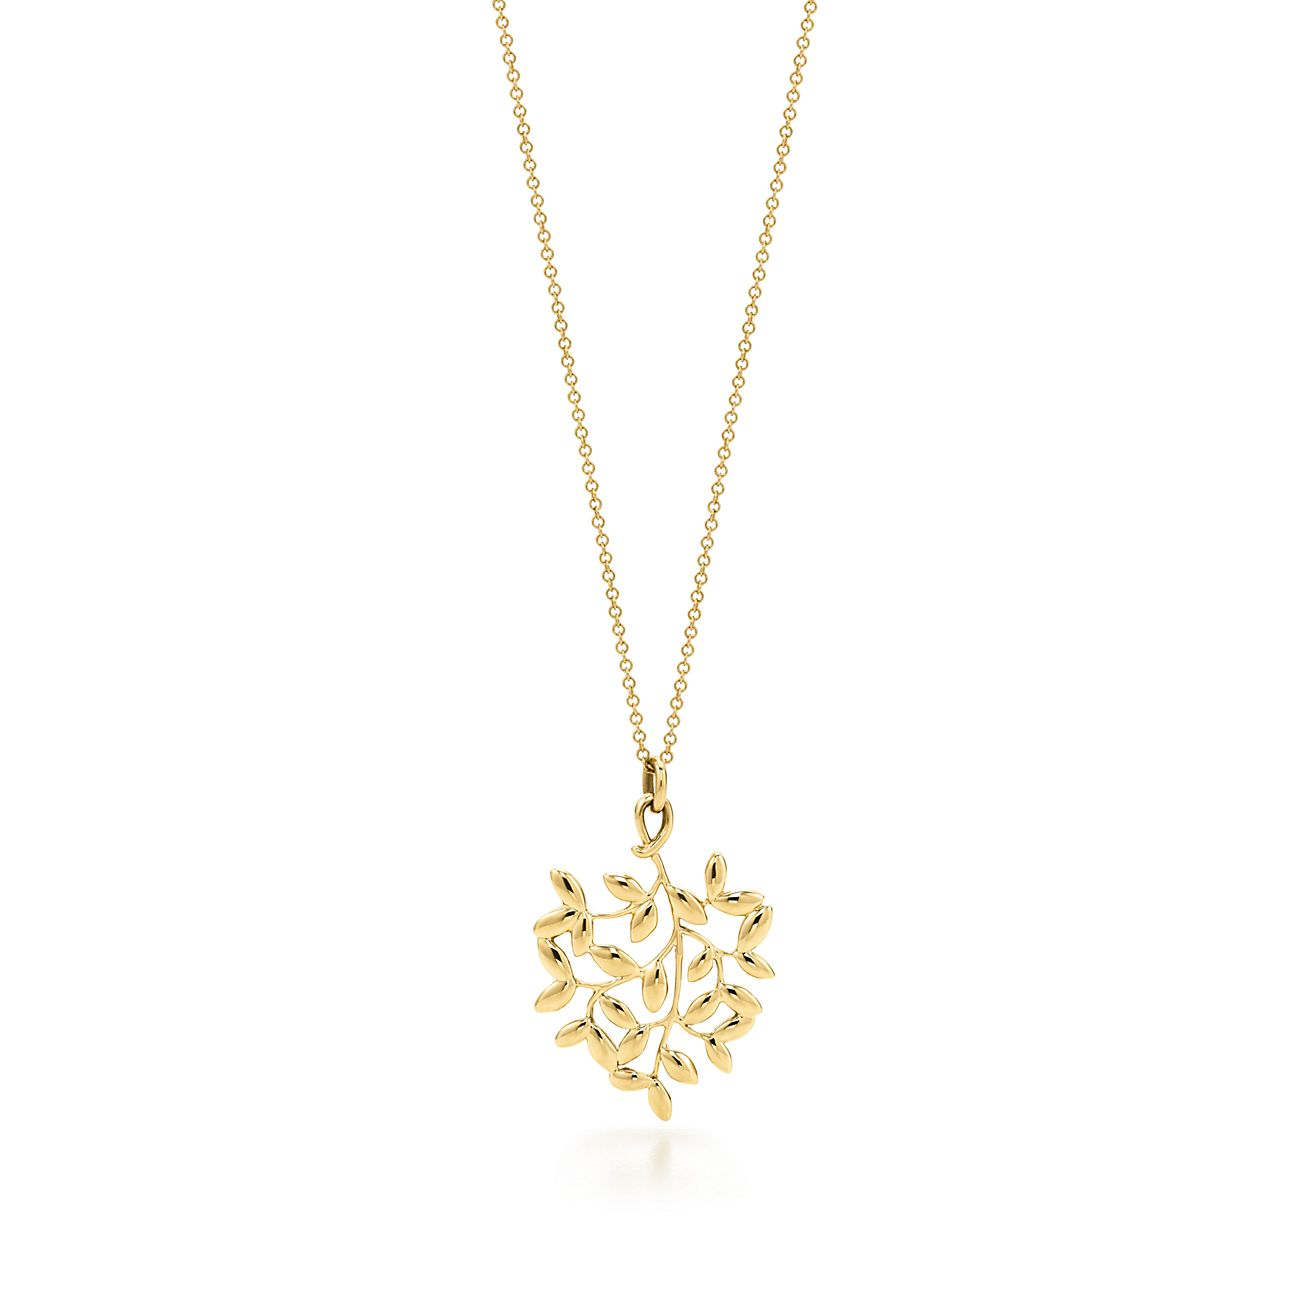 necklace view click to expand bella leaf pendant pipa gold in diamond with pendants by yellow